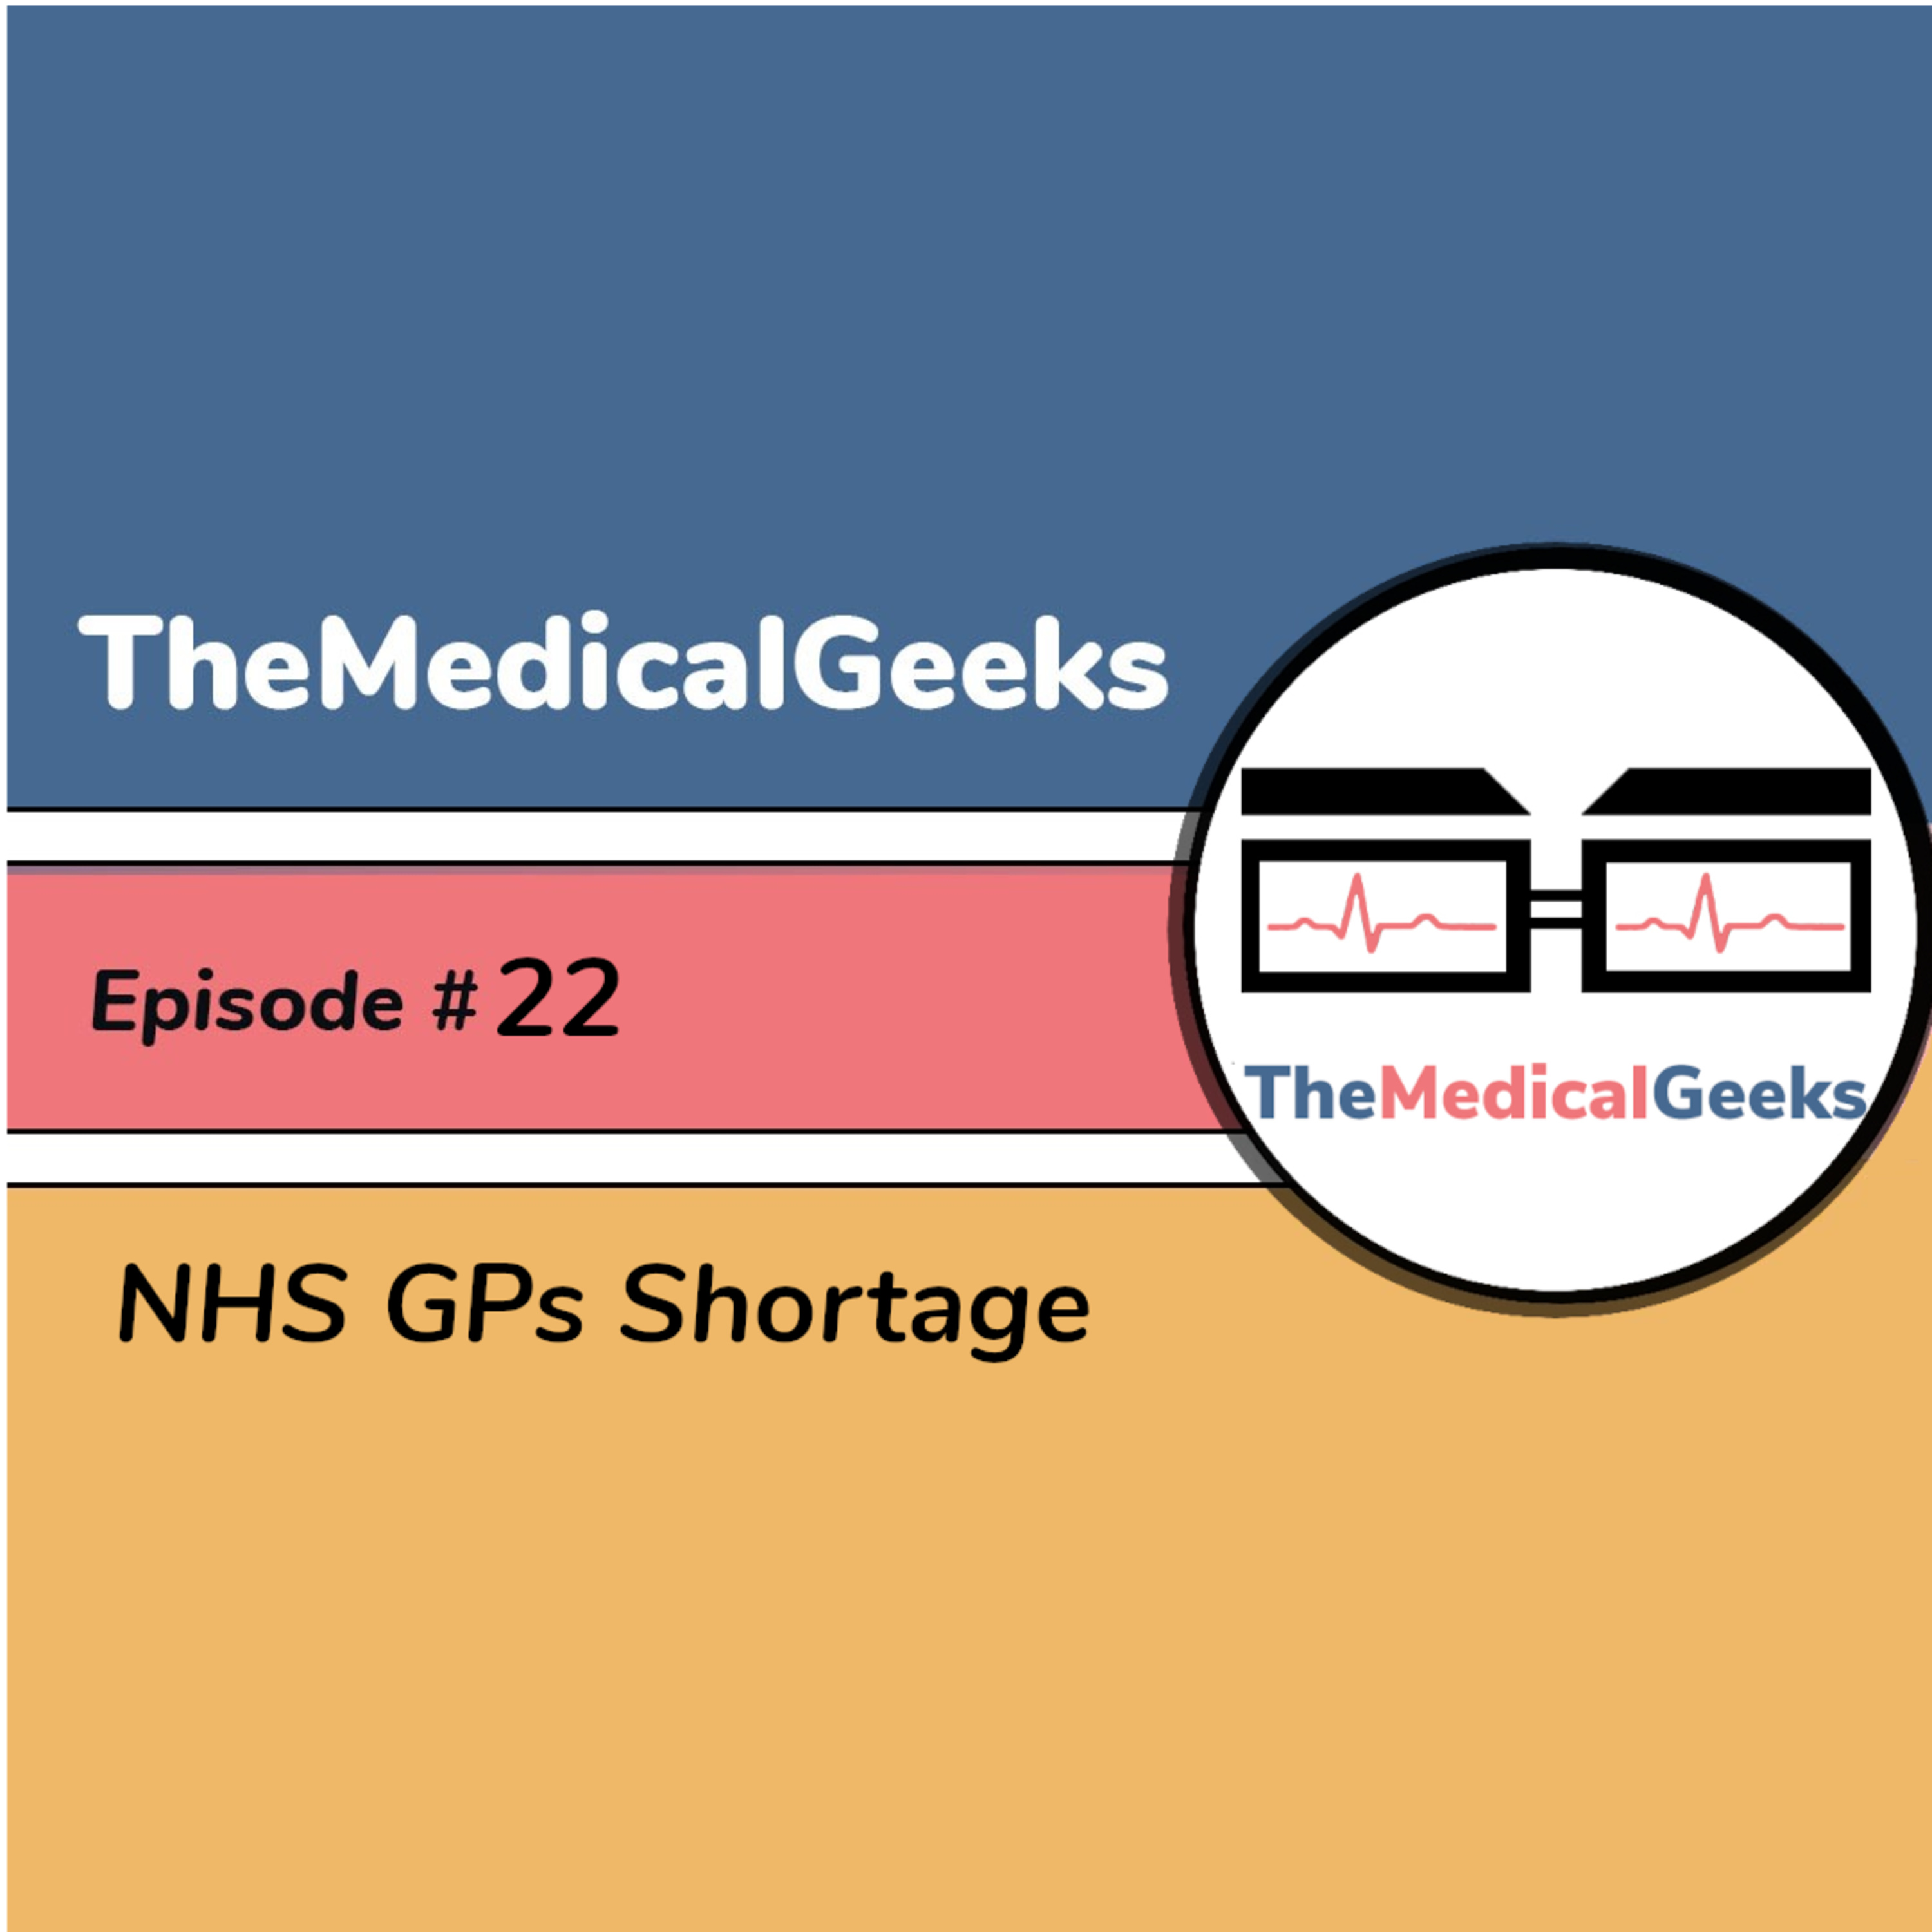 #22 Episode 22: NHS GPs Shortage